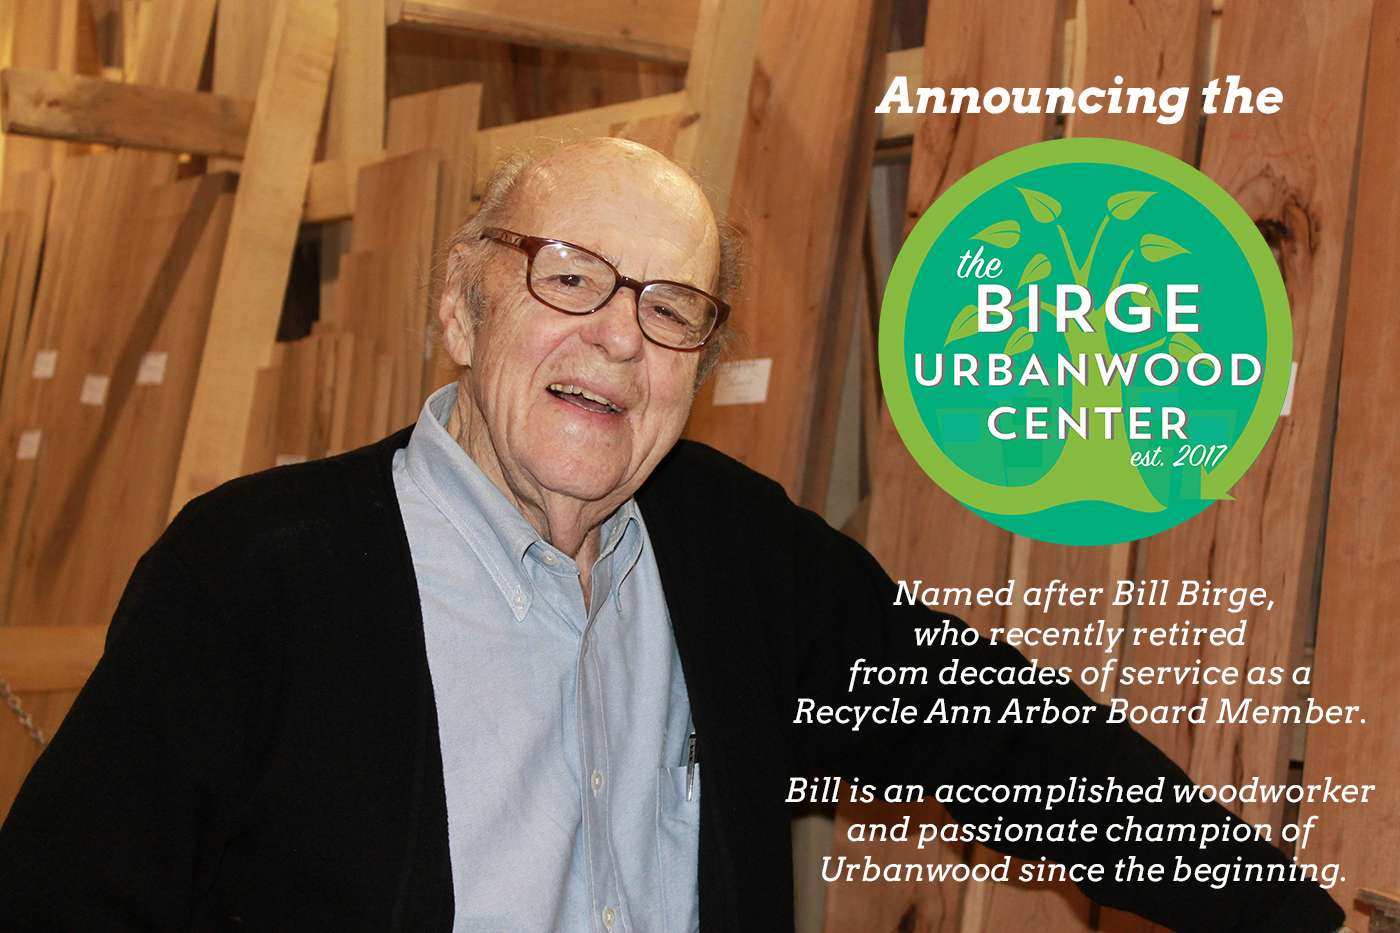 Birge Urbanwood Center